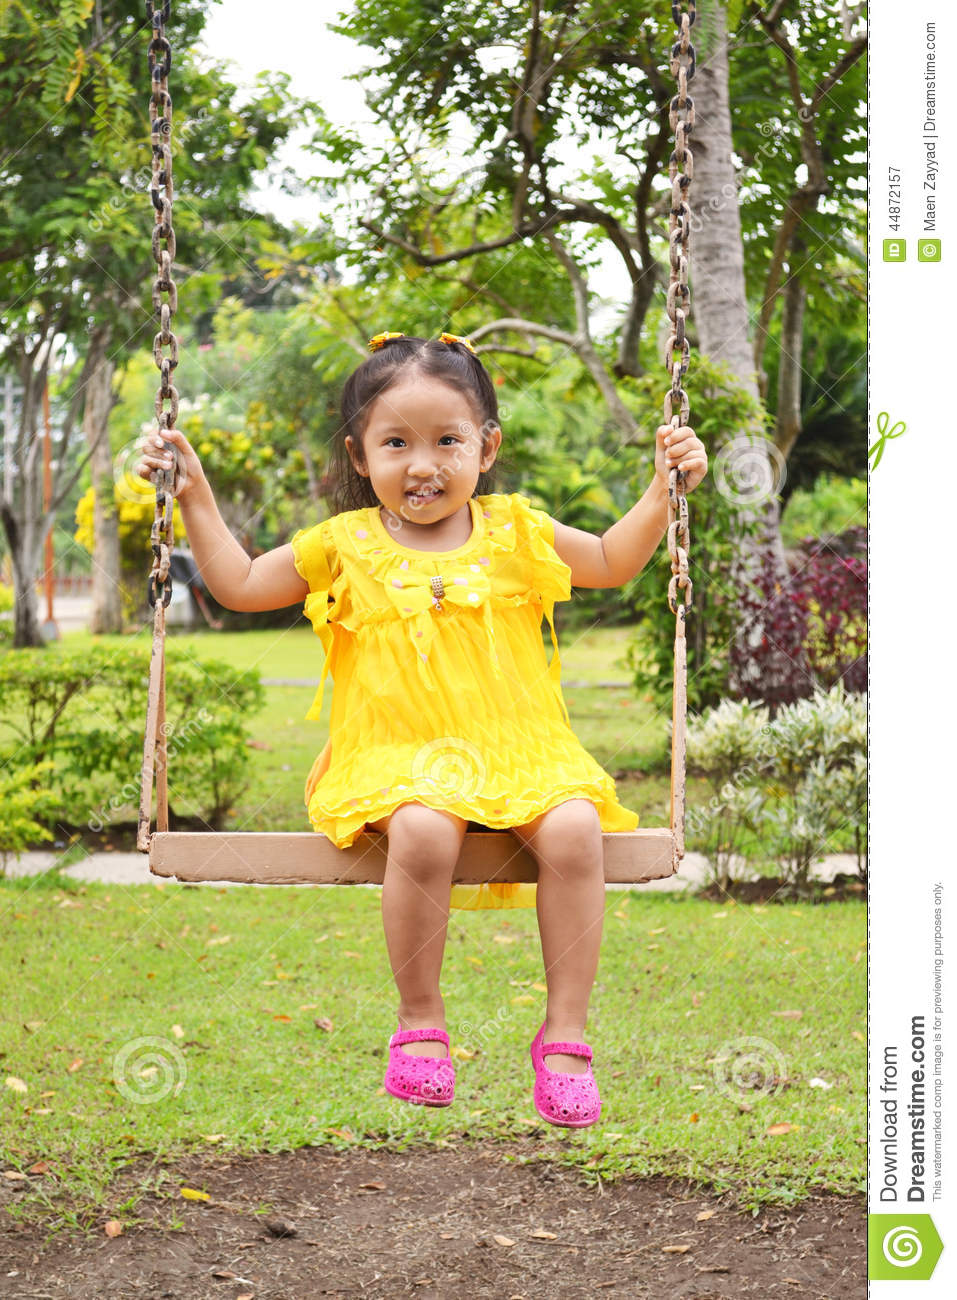 Cute Child On A Swing Stock Photo - Image: 44872157